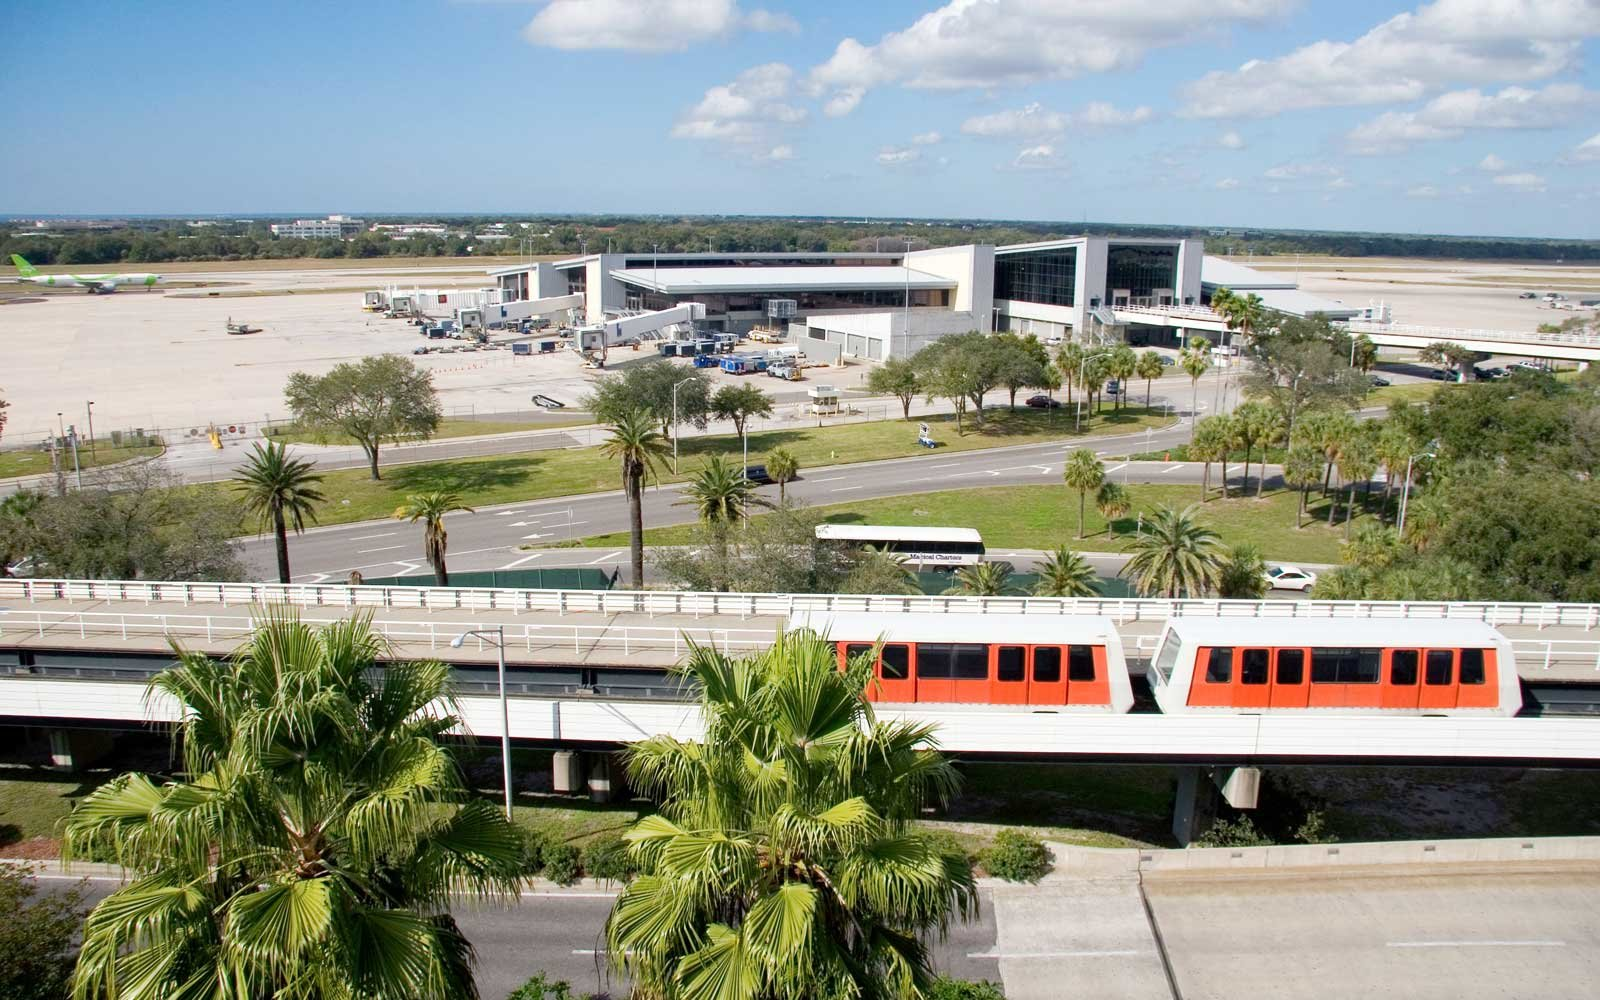 Monorail at the Tampa International Airport Tampa Florida